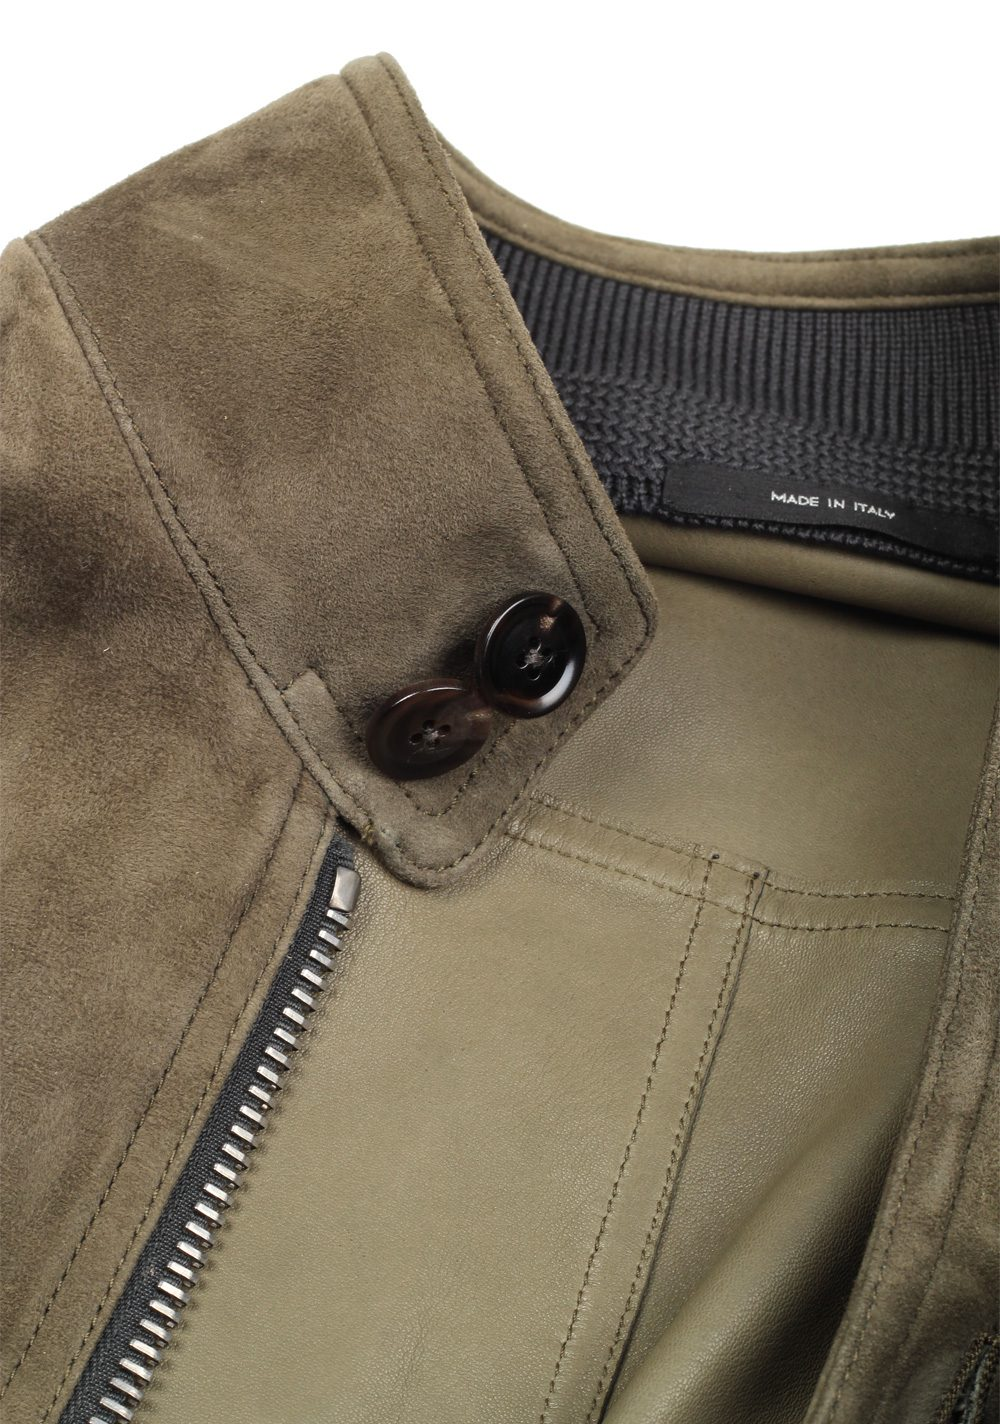 TOM FORD Taupe Leather Suede Jacket Coat Size 48 / 38R U.S. Outerwear | Costume Limité